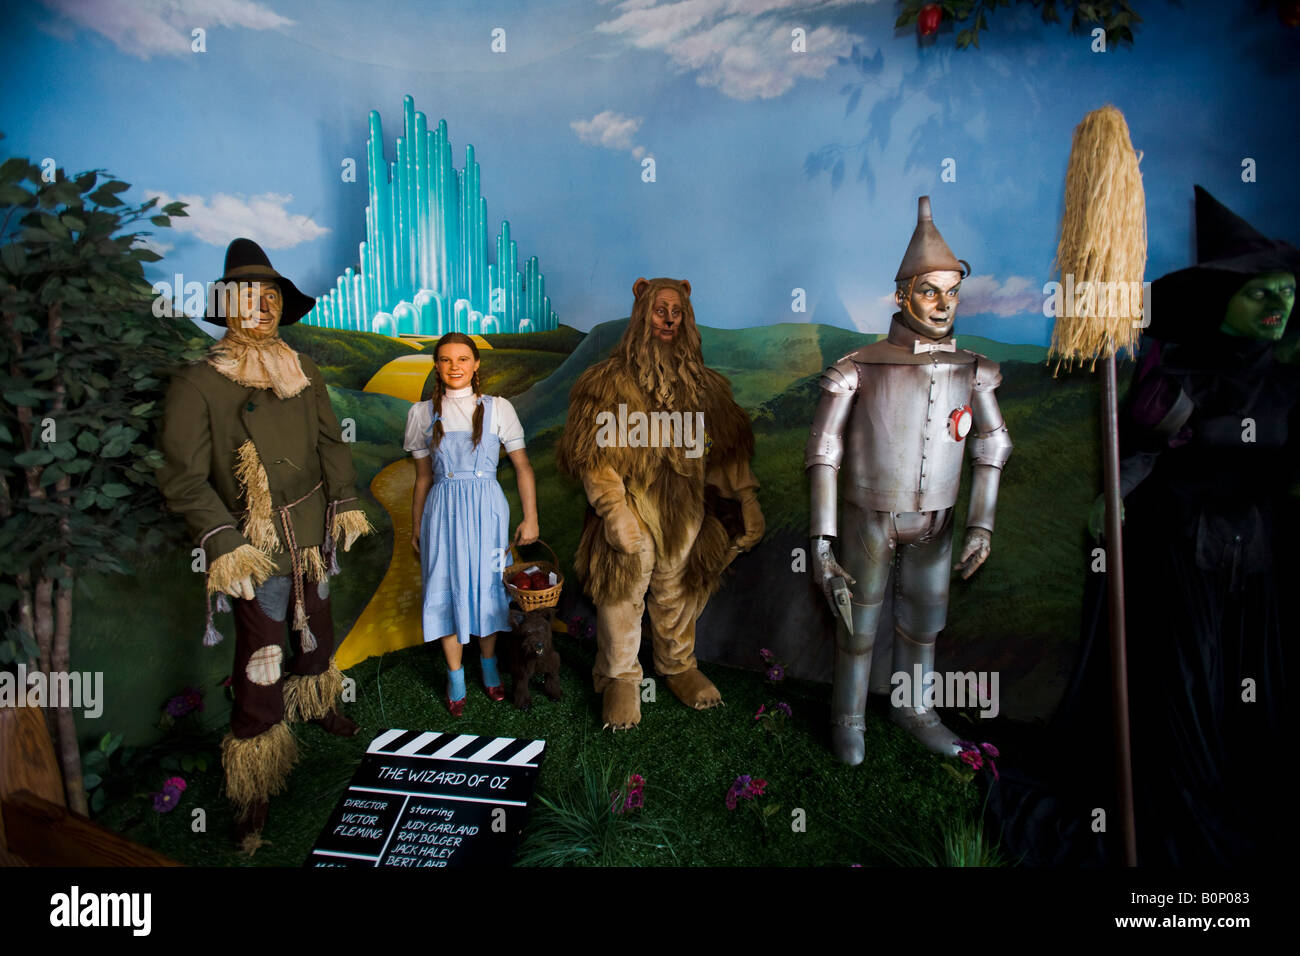 The Wizard of Oz Hollywood Wax Museum Hollywood Los Angeles California United States of America - Stock Image